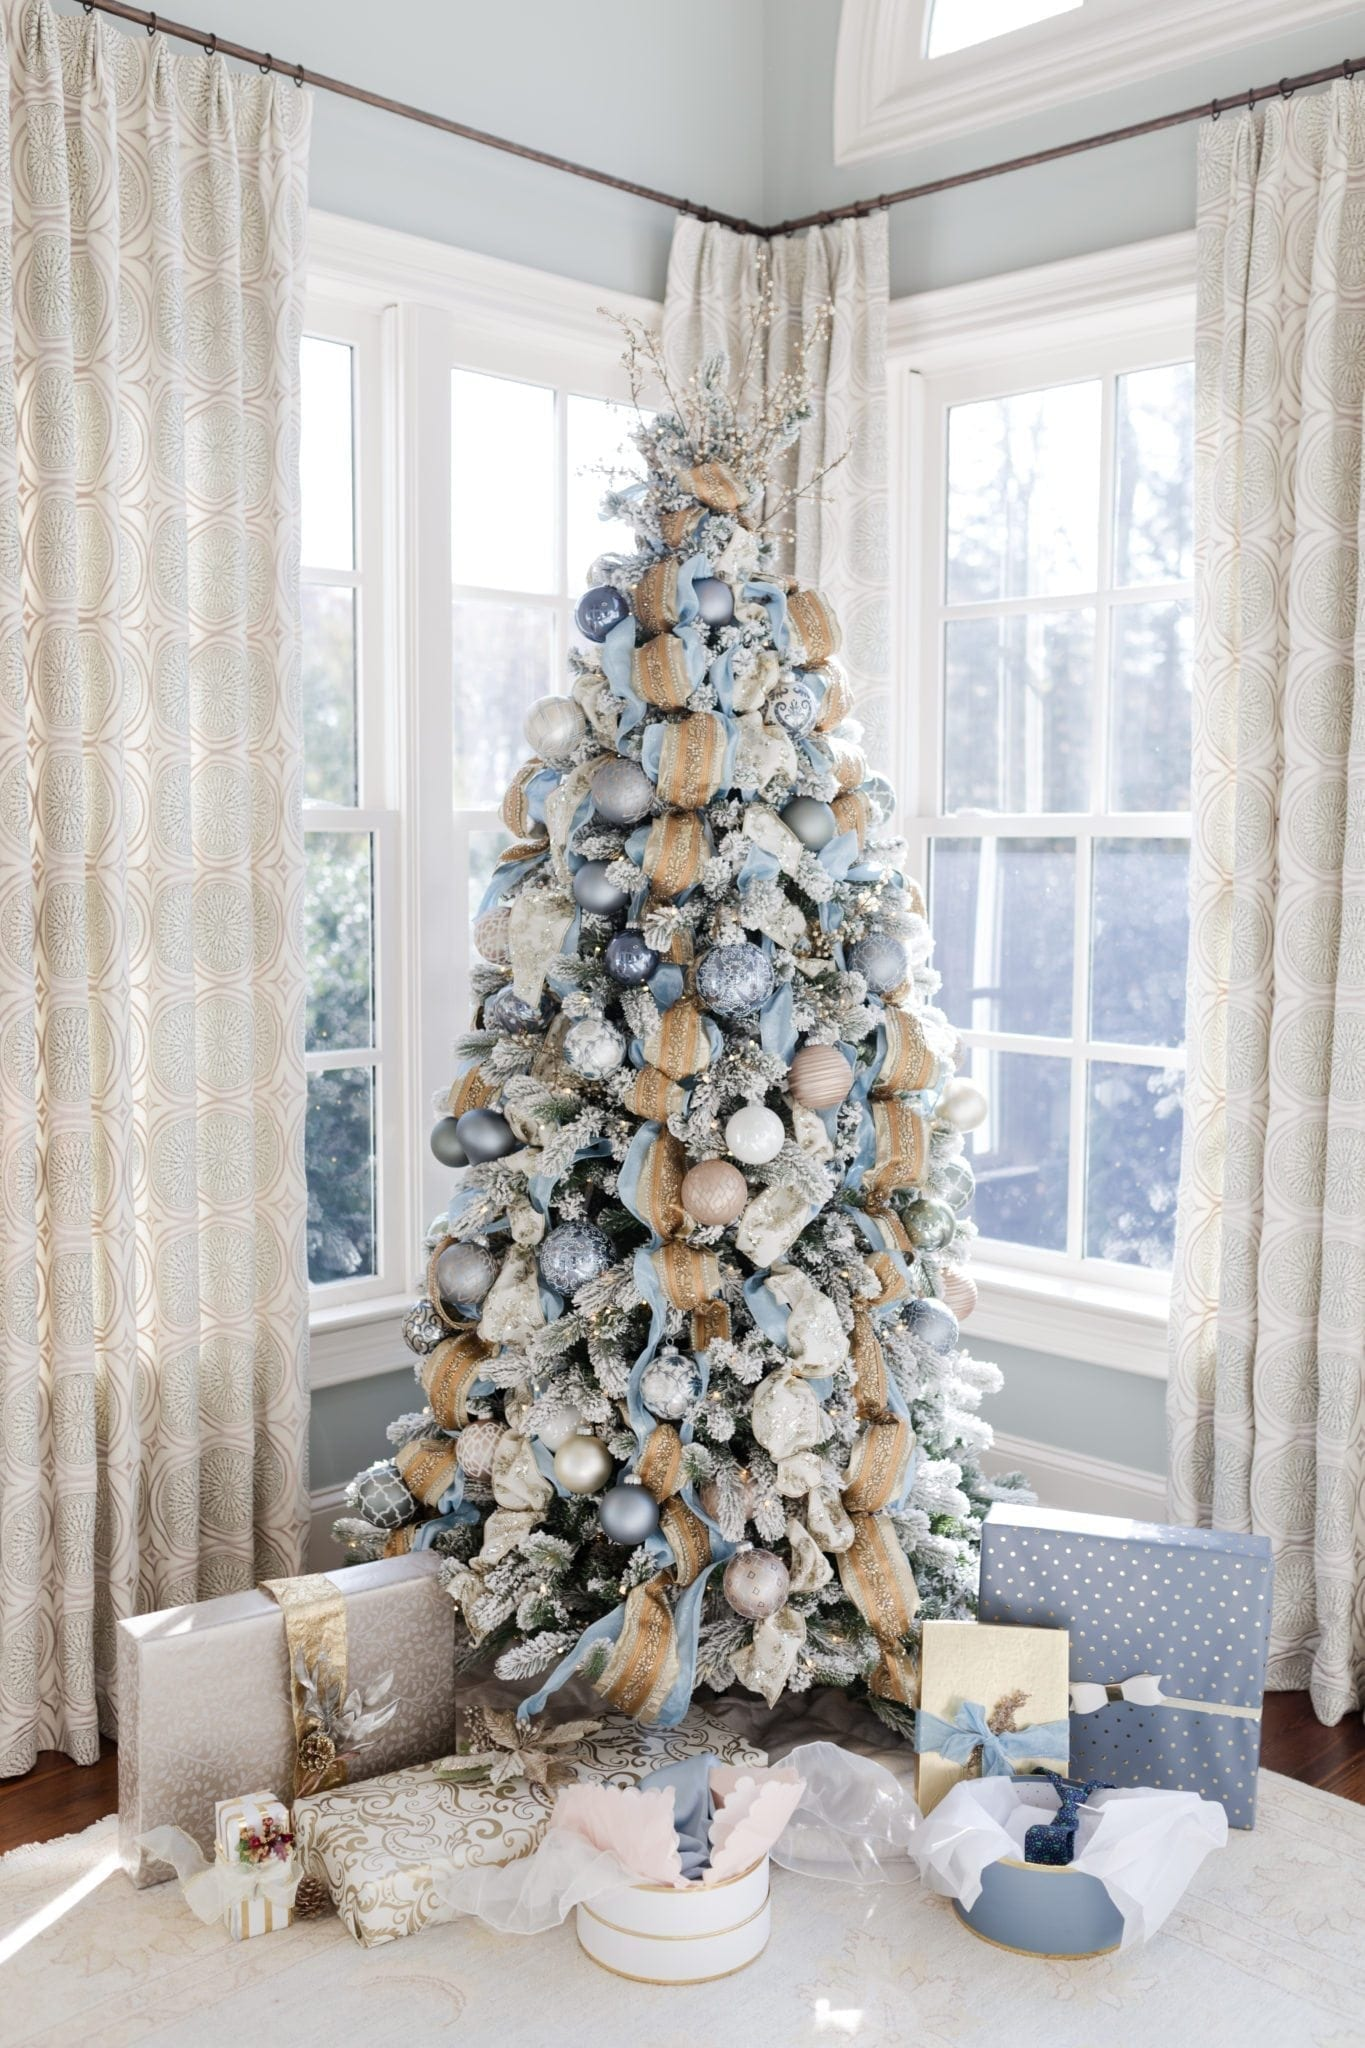 Gold and blue Christmas tree. Holiday inspiration for decorating for Christmas with blue and gold.